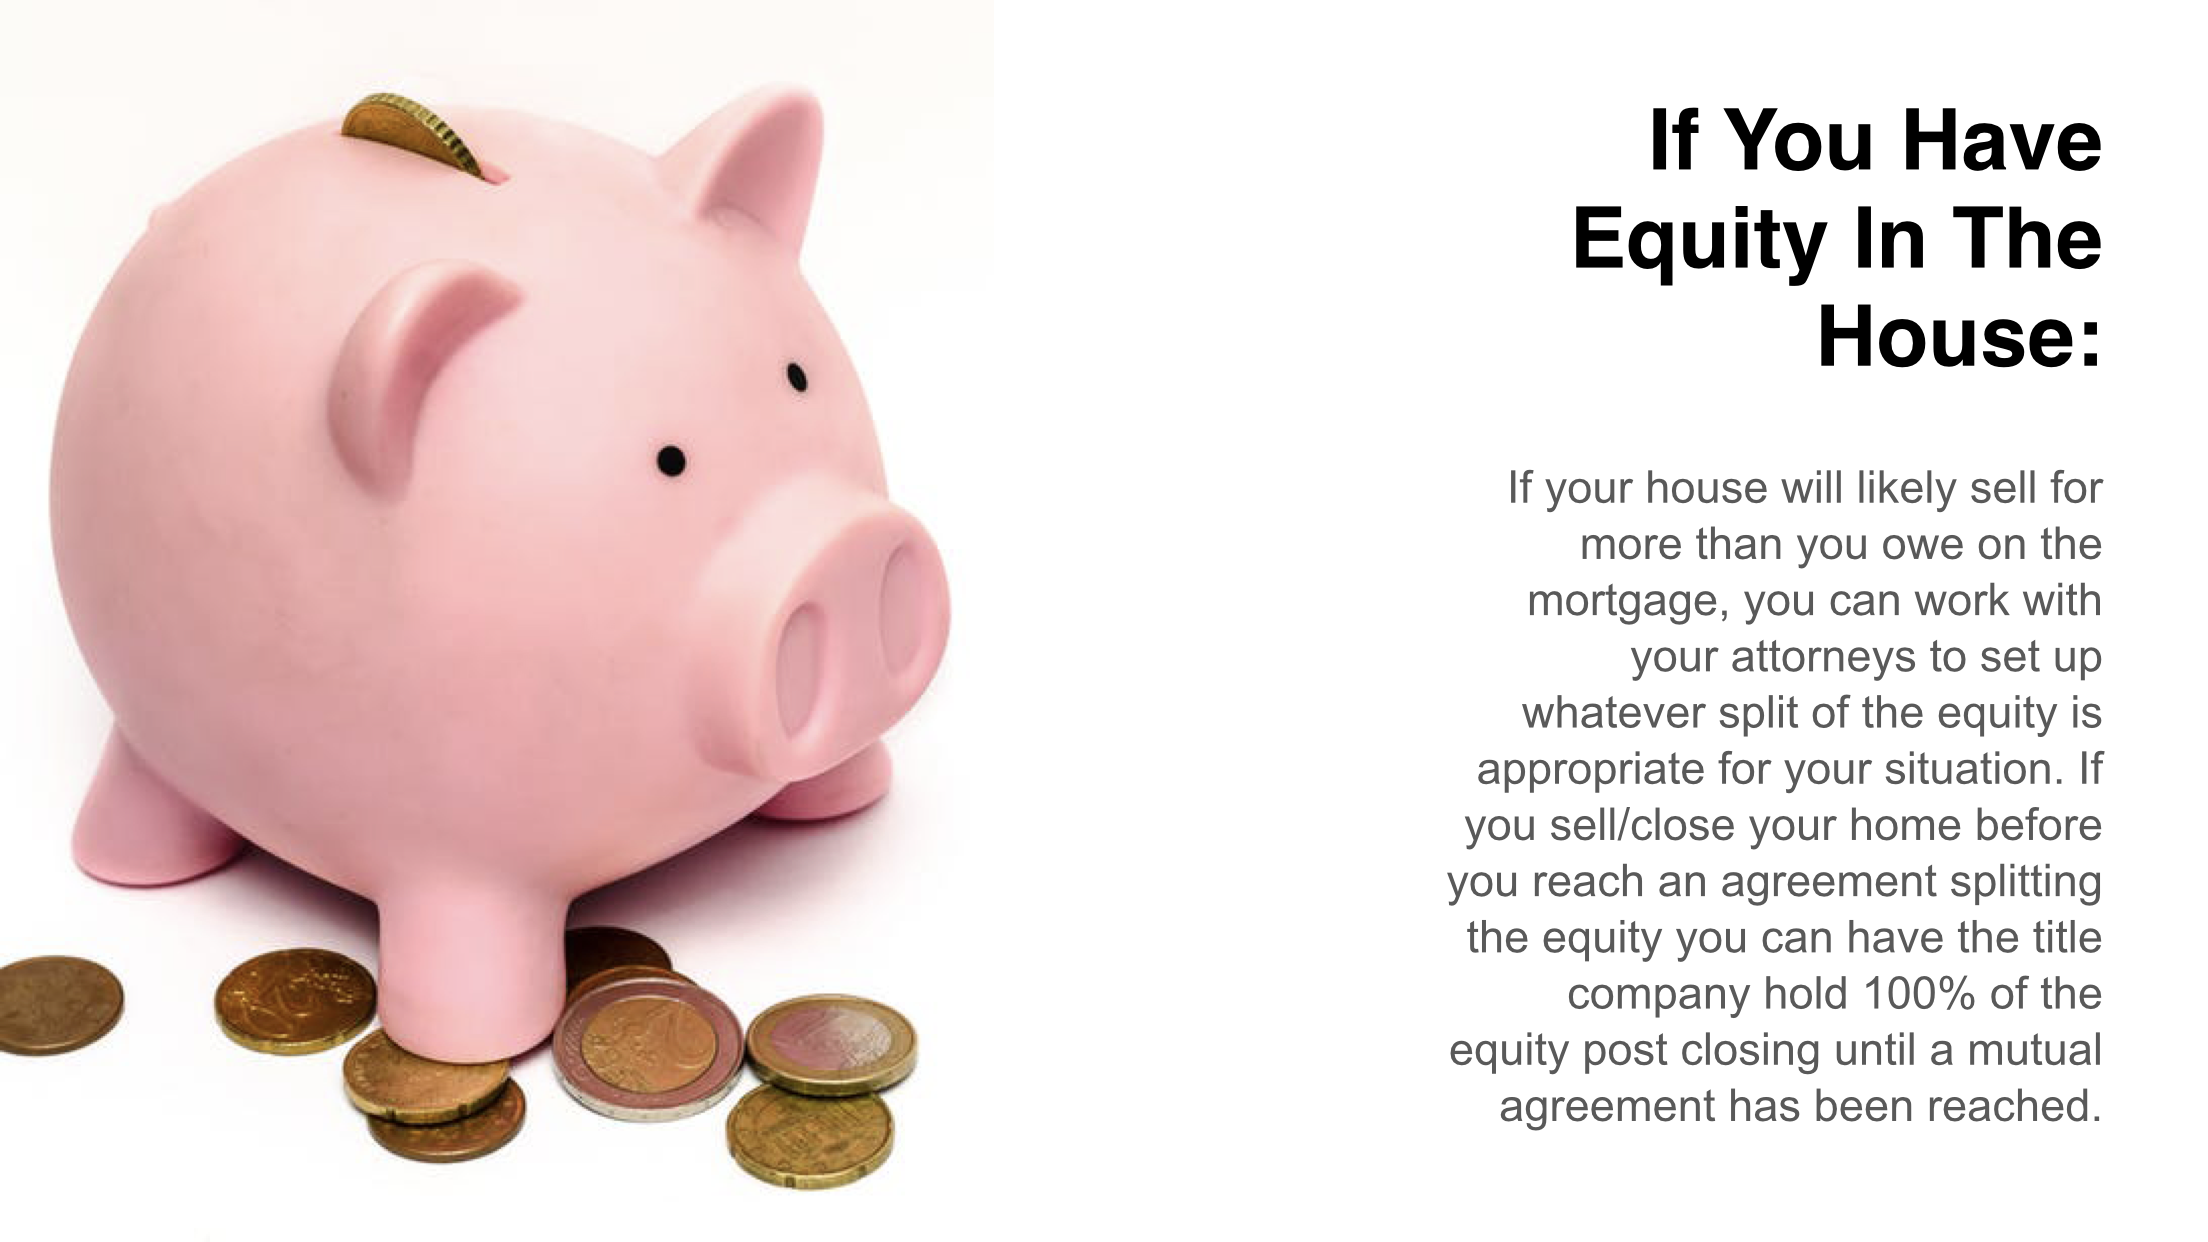 If you have equity in the house